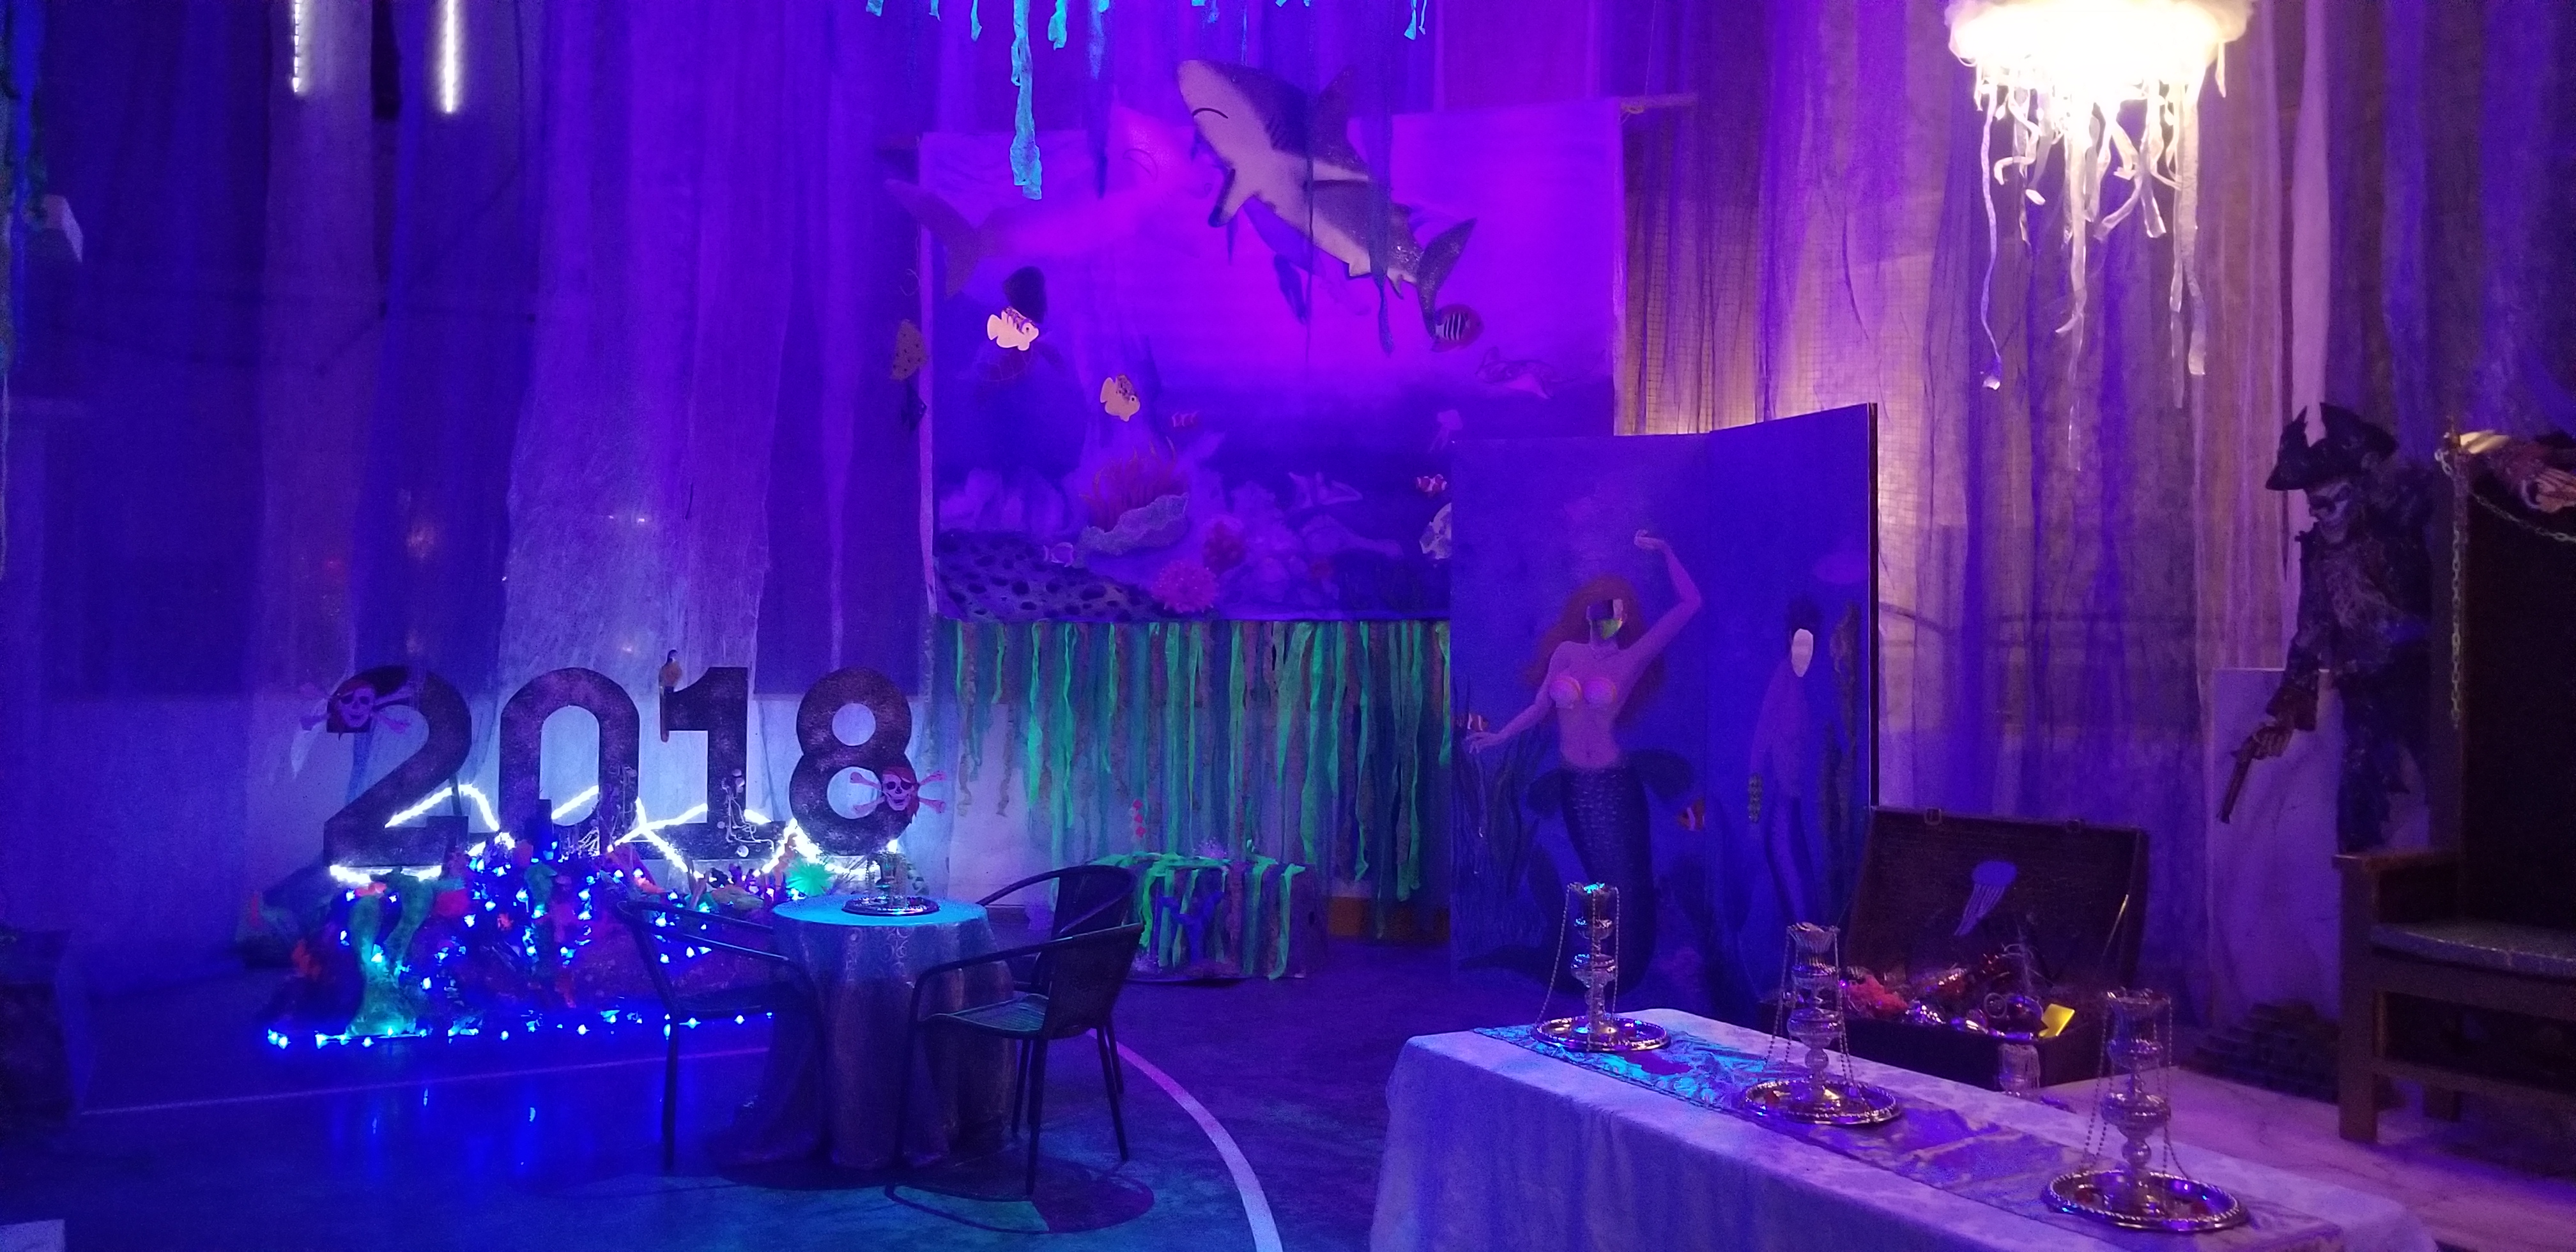 2018 Under the Sea Dance Floor